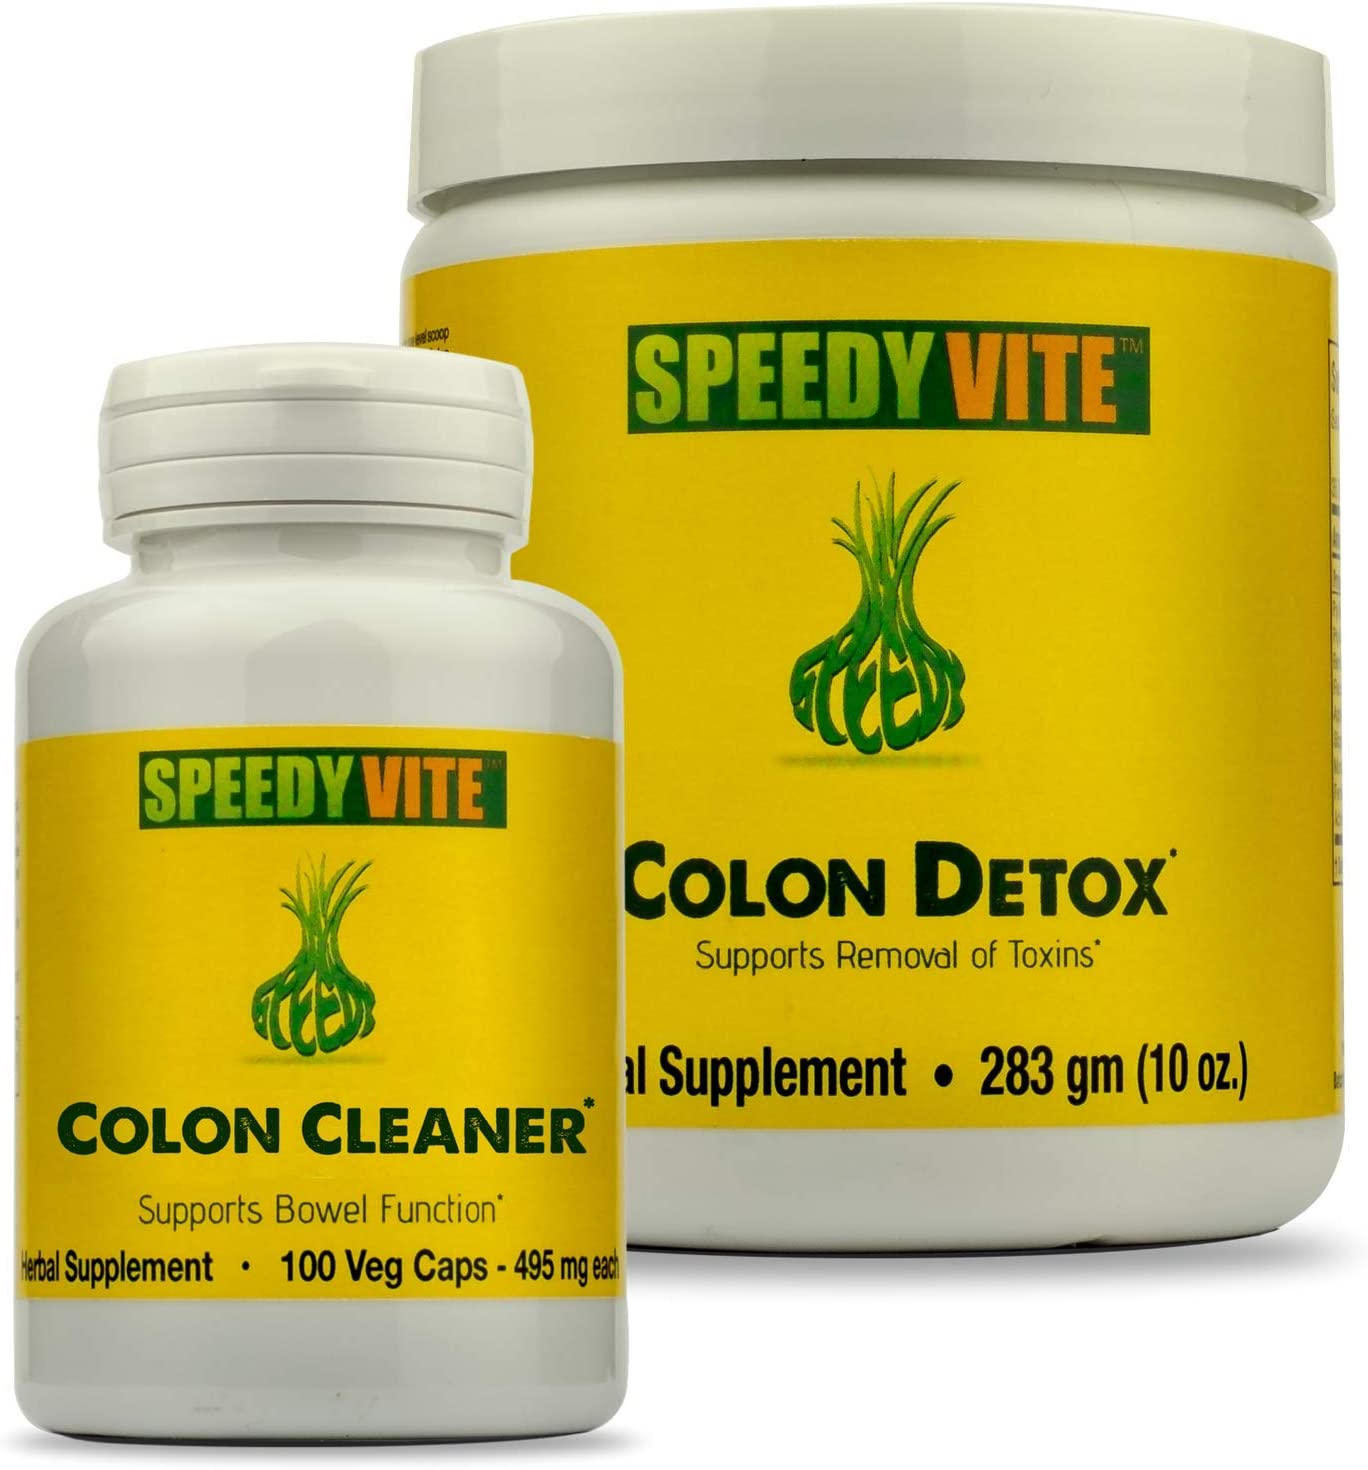 SpeedyVite Complete Colon Detox Cleanse Set 10oz Powder Detox, 100 Veg Cap Cleanse